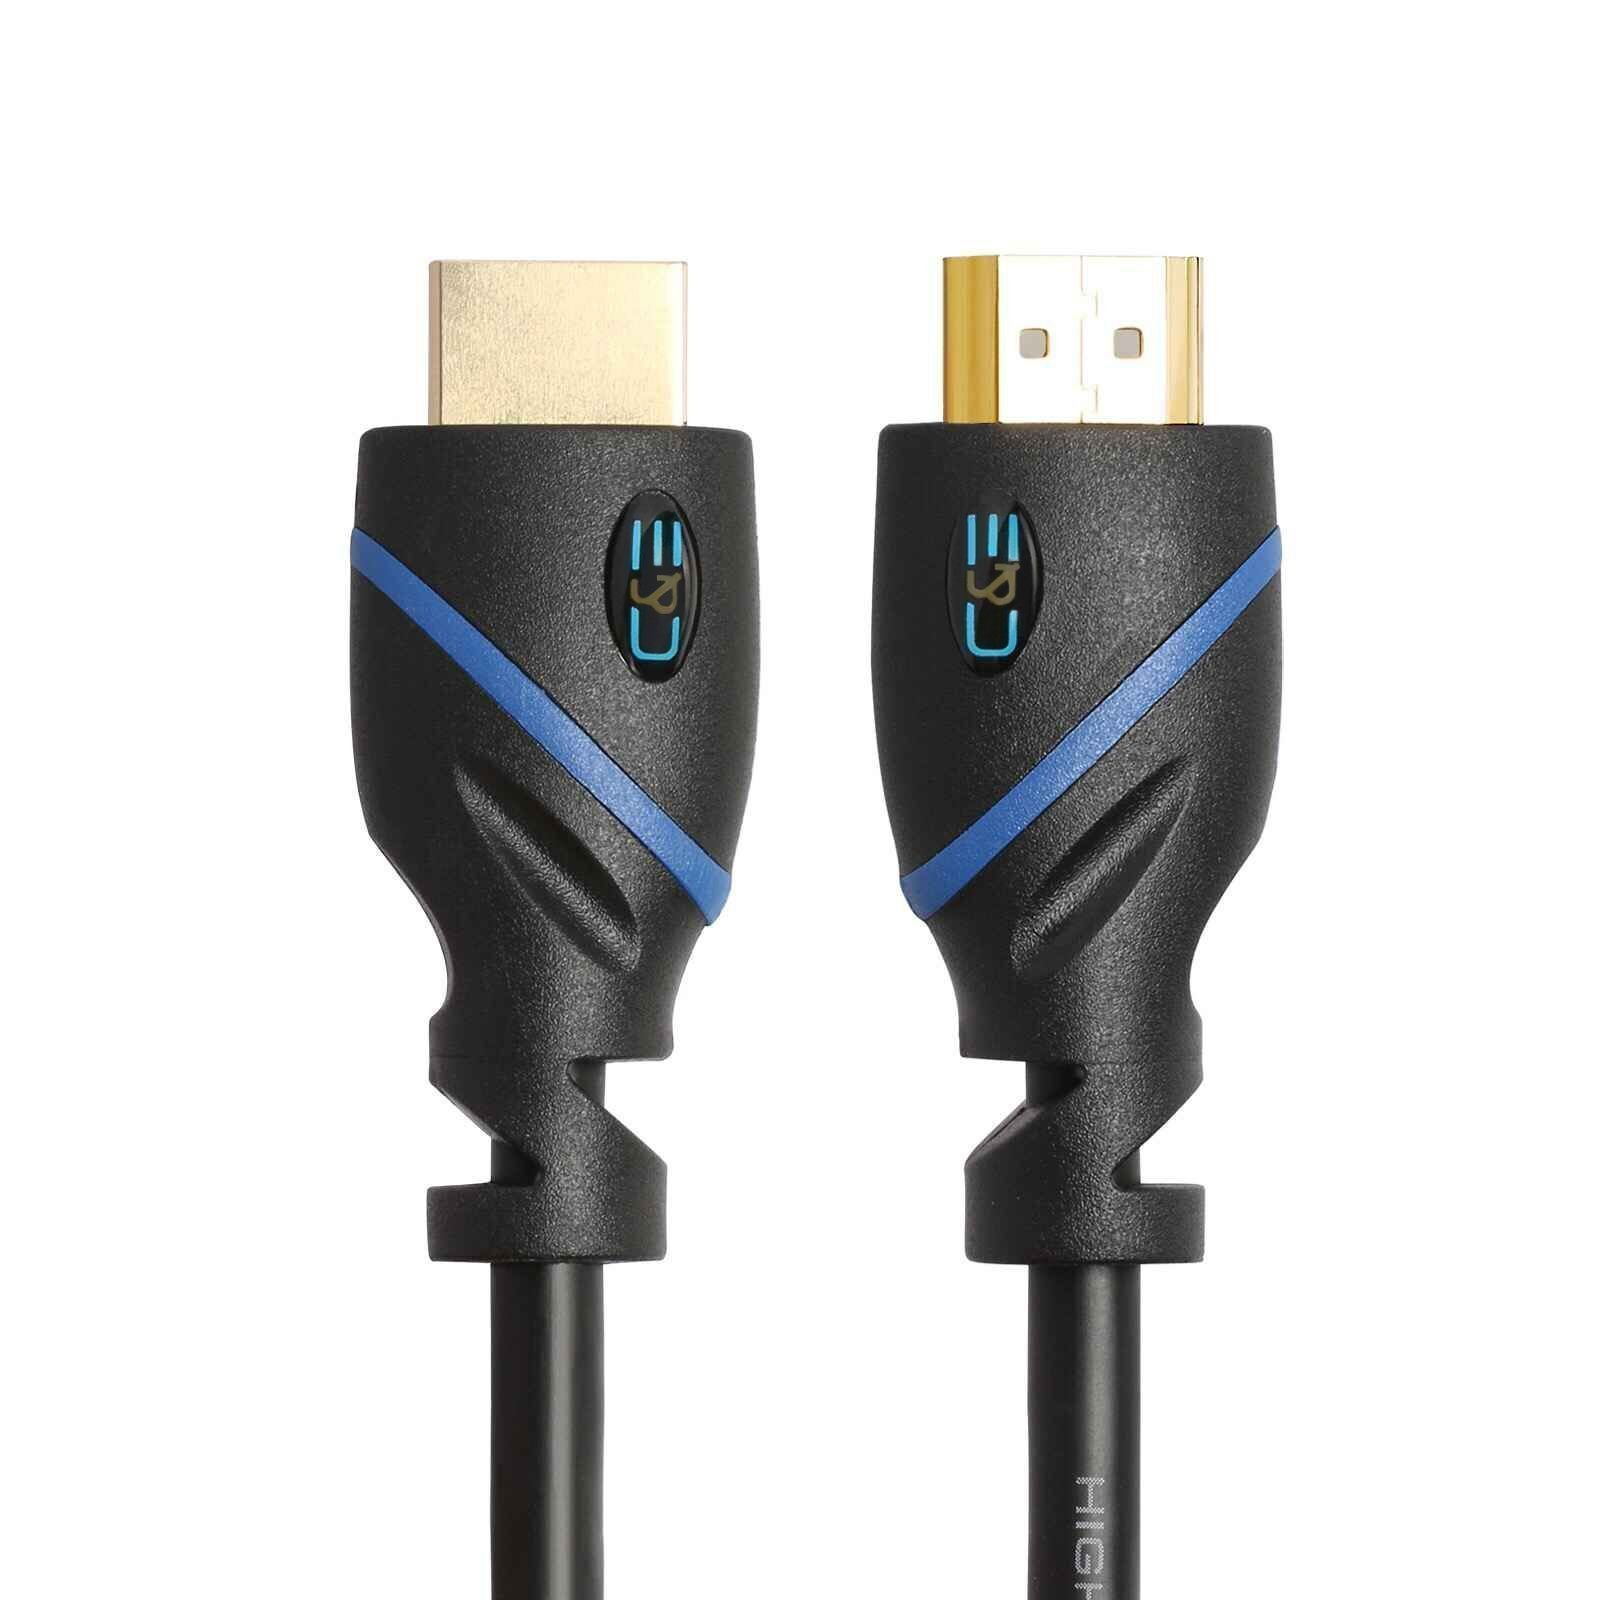 C&E 50 Feet, High Speed HDMI Cable Supports Ethernet, 3D and Audio Return, UltraHD 4K Ready, Latest Specification Cable, 1 Pack, CNE59007